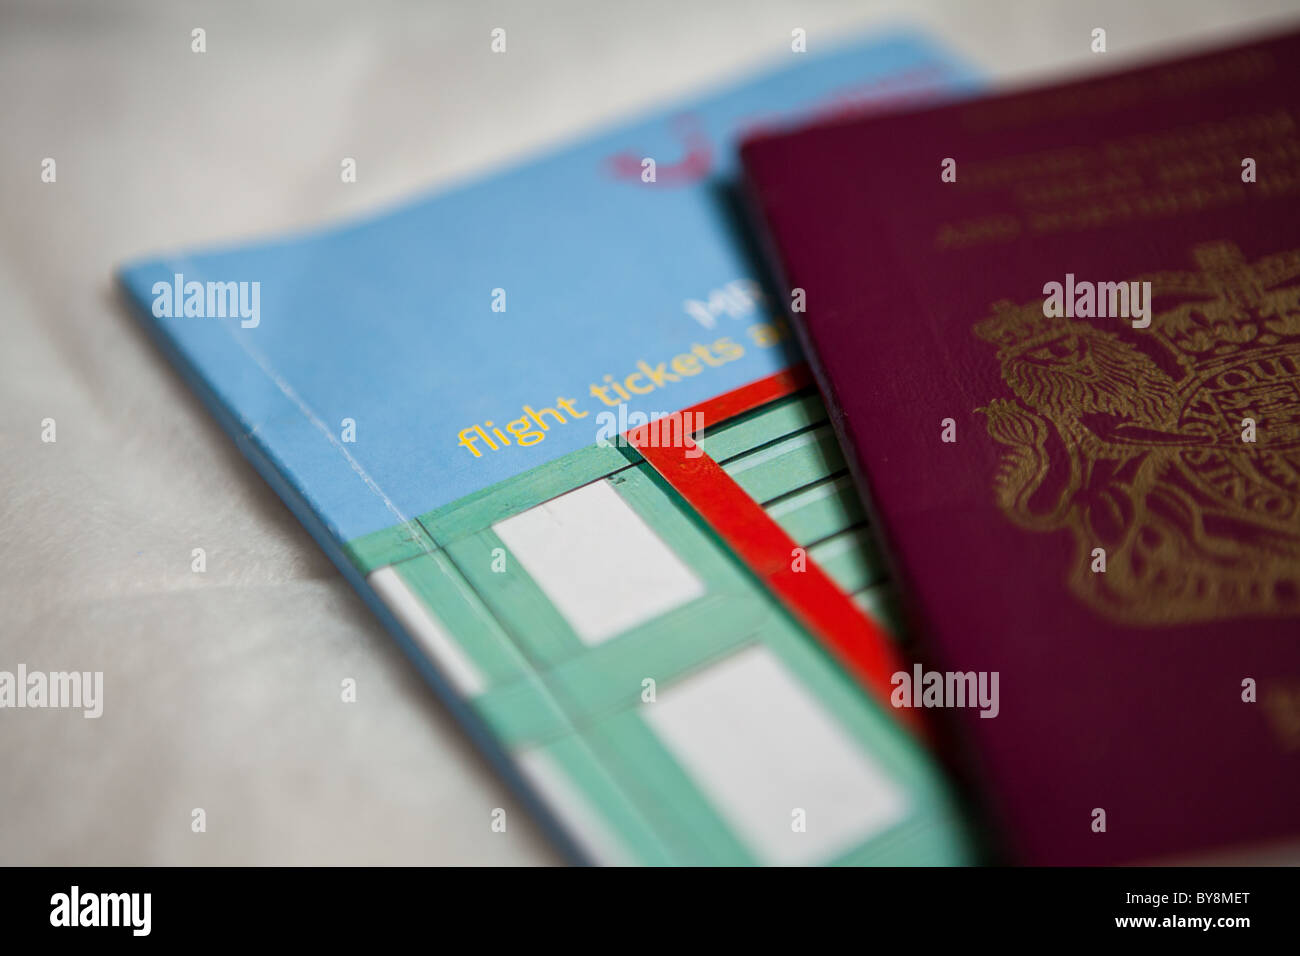 British passport on a travel guide book - Stock Image